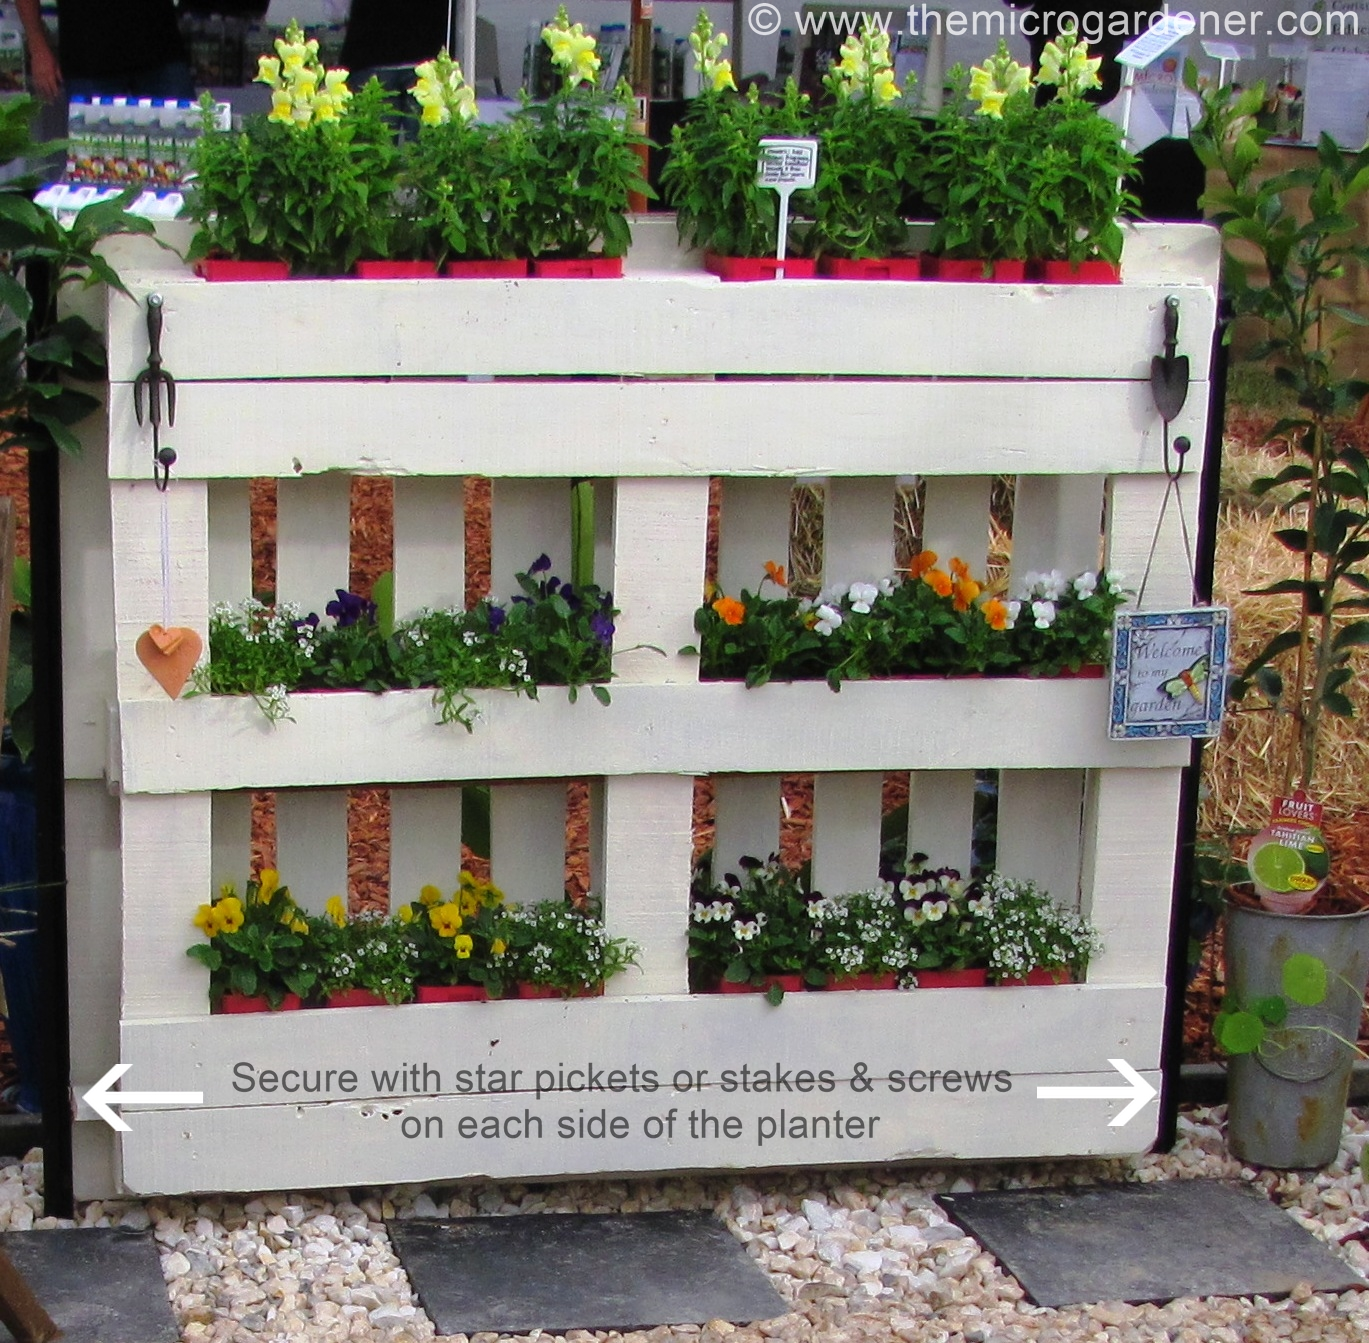 Pallet Planter Needs To Be Secured In Place As It Is Very Heavy. | The